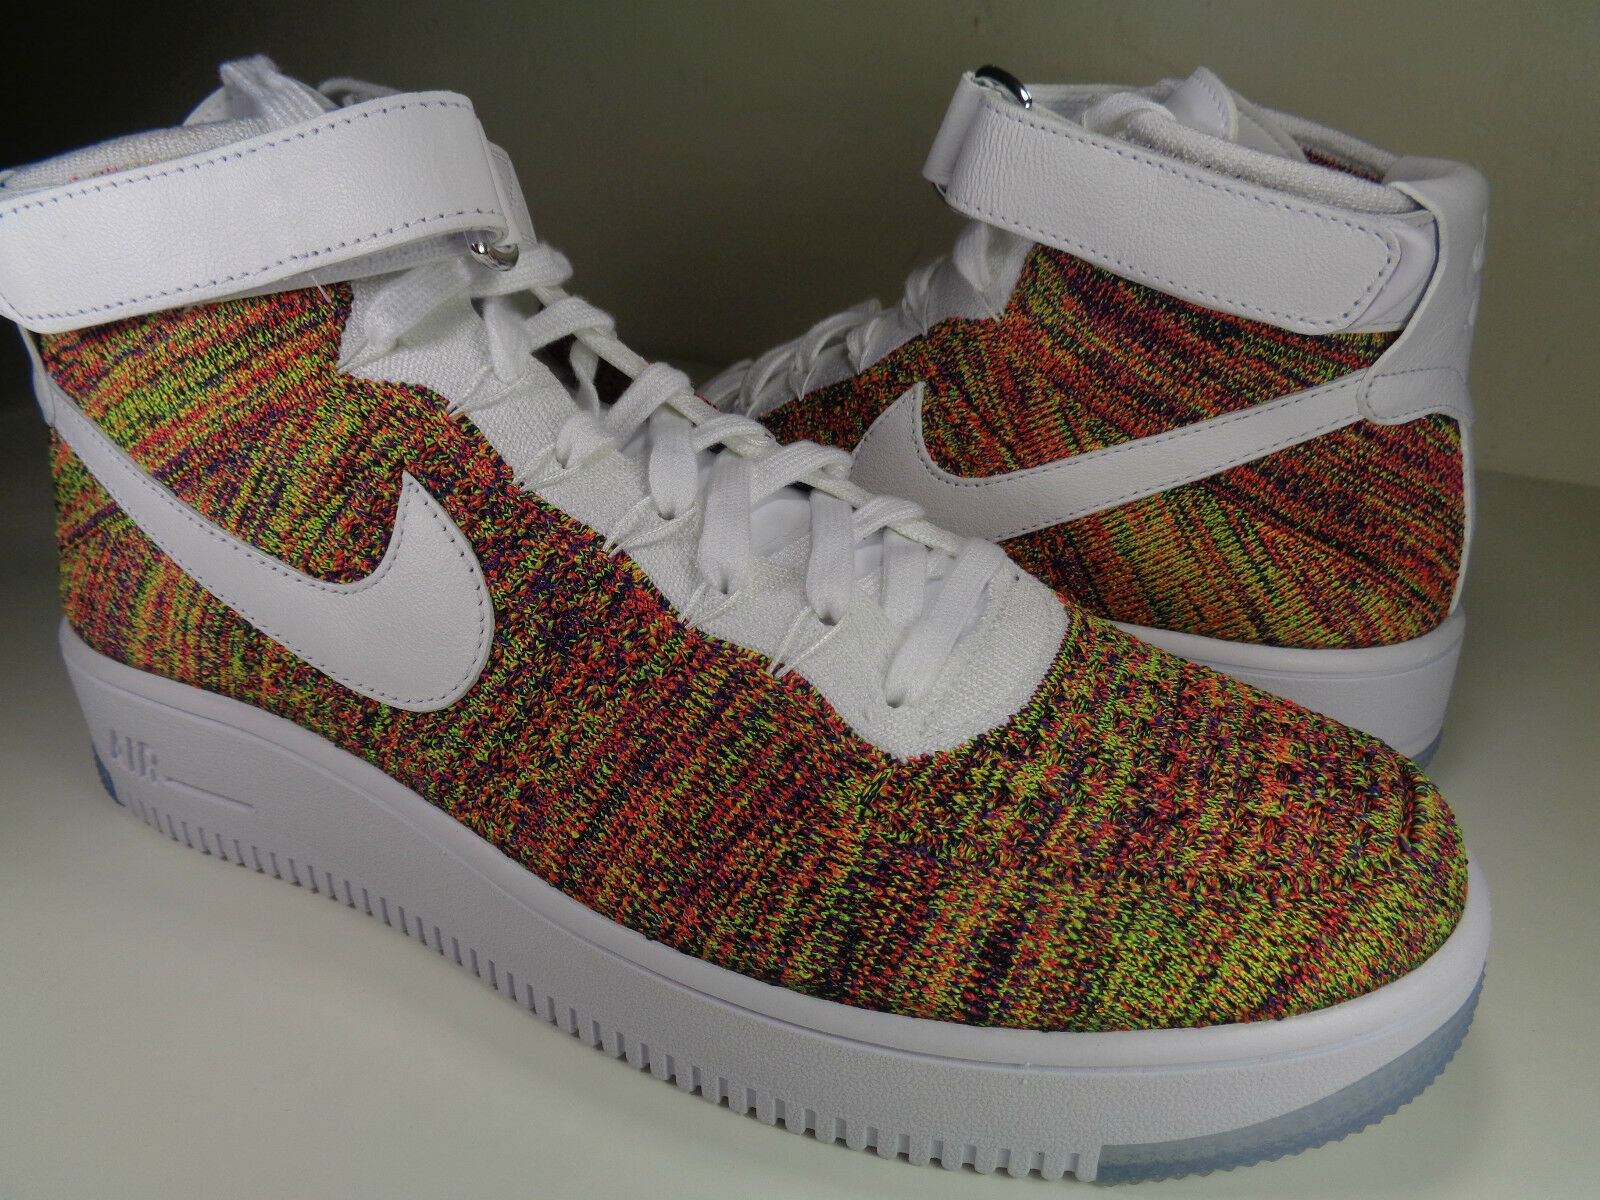 Nike AF1 Ultra Flyknit Mid Multicolor White Crimson Price reduction best-selling model of the brand